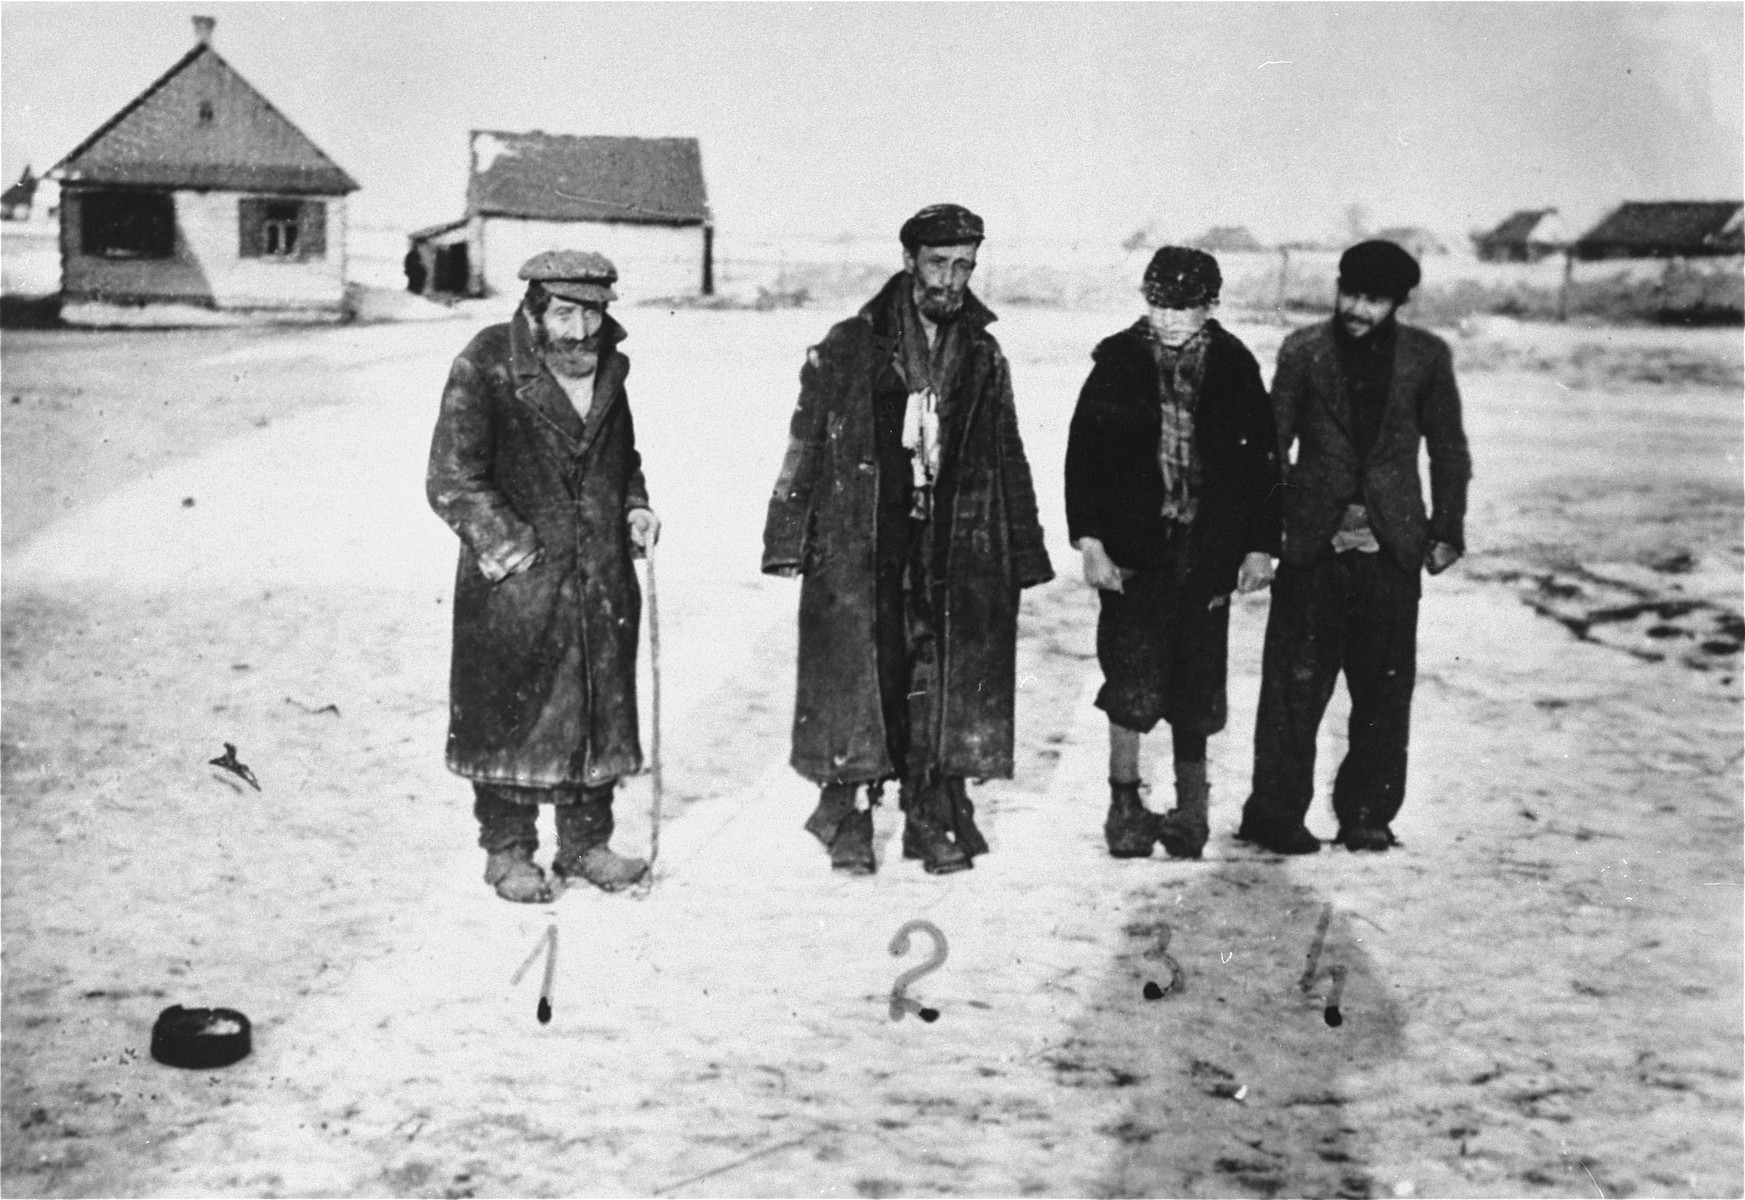 Four Jewish men pose on an unpaved road in the Wisznice ghetto.  Pictured from left to right are: Jeko Frydman, Zachary Bajmdzole, Pinkus Rozenberg and Moszko Kaszemadzer.